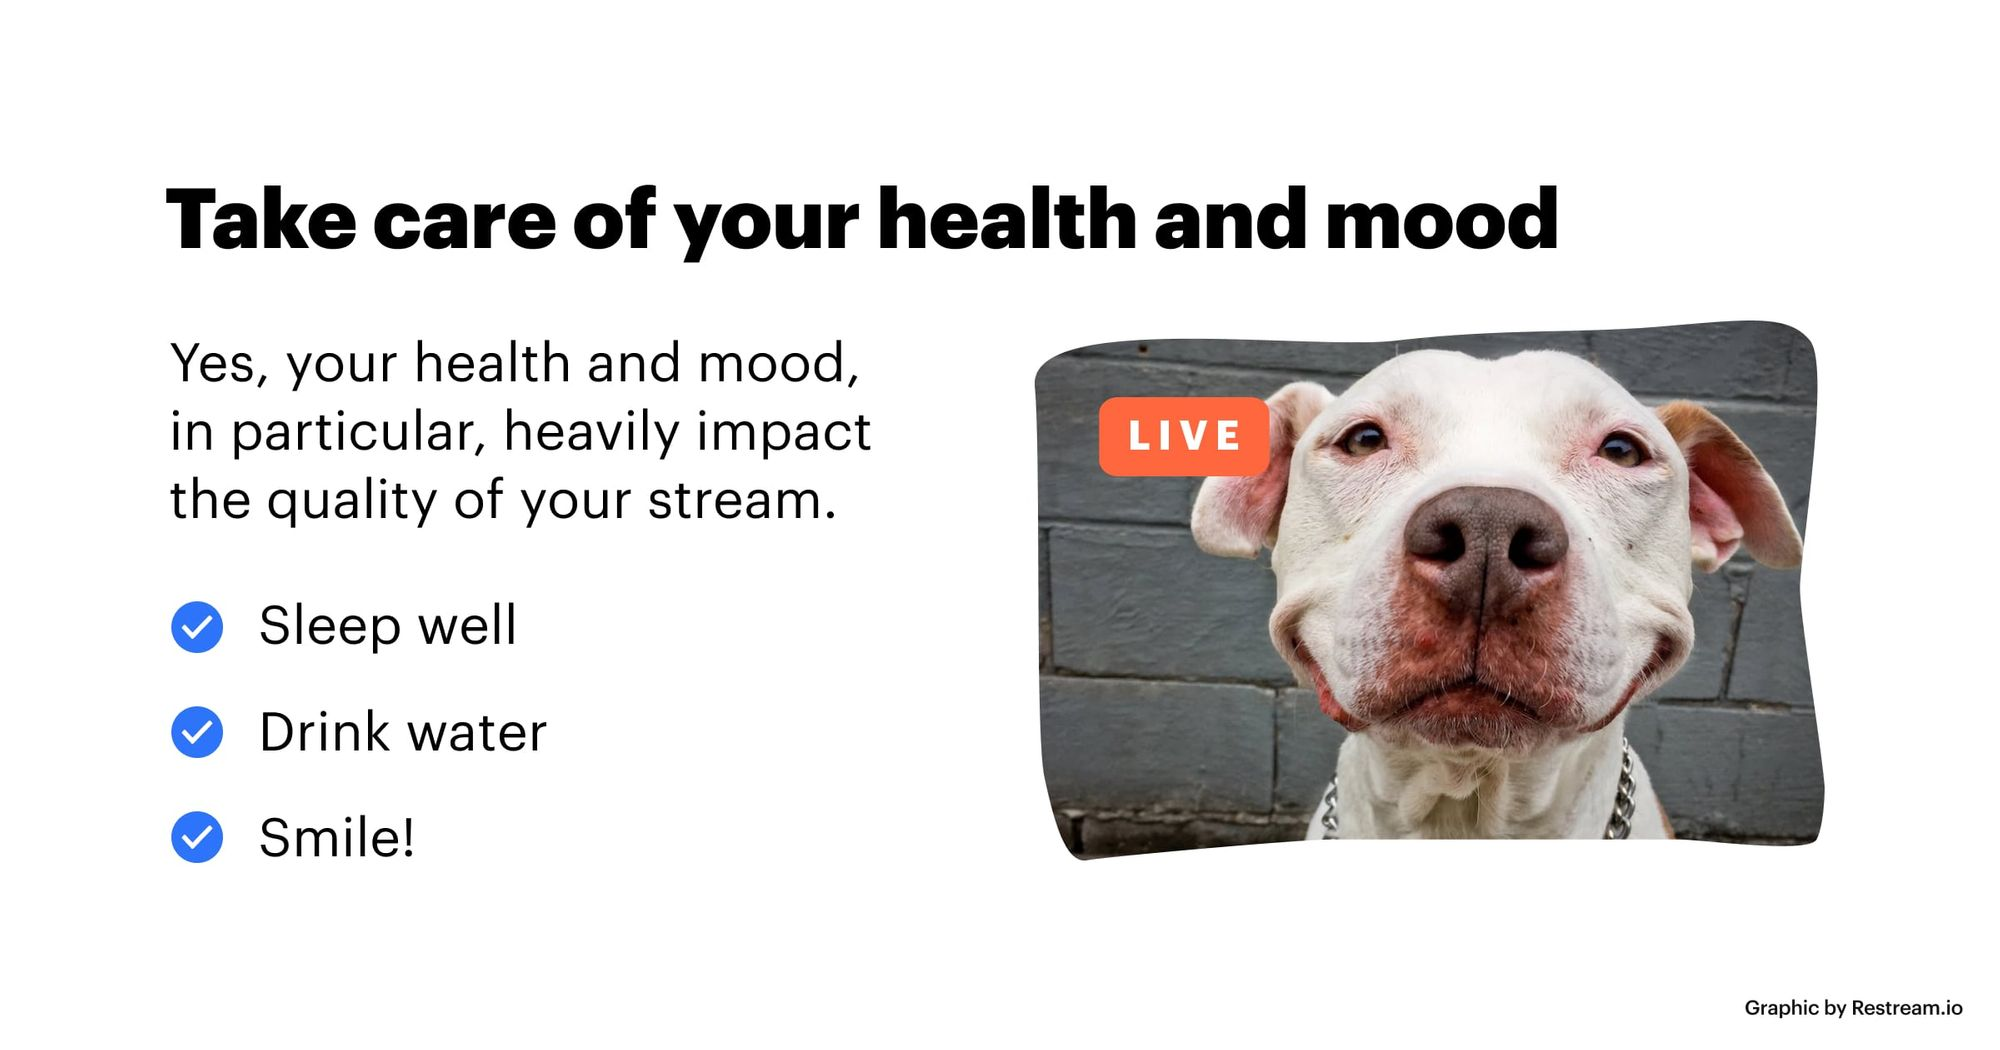 Take care of your health and mood